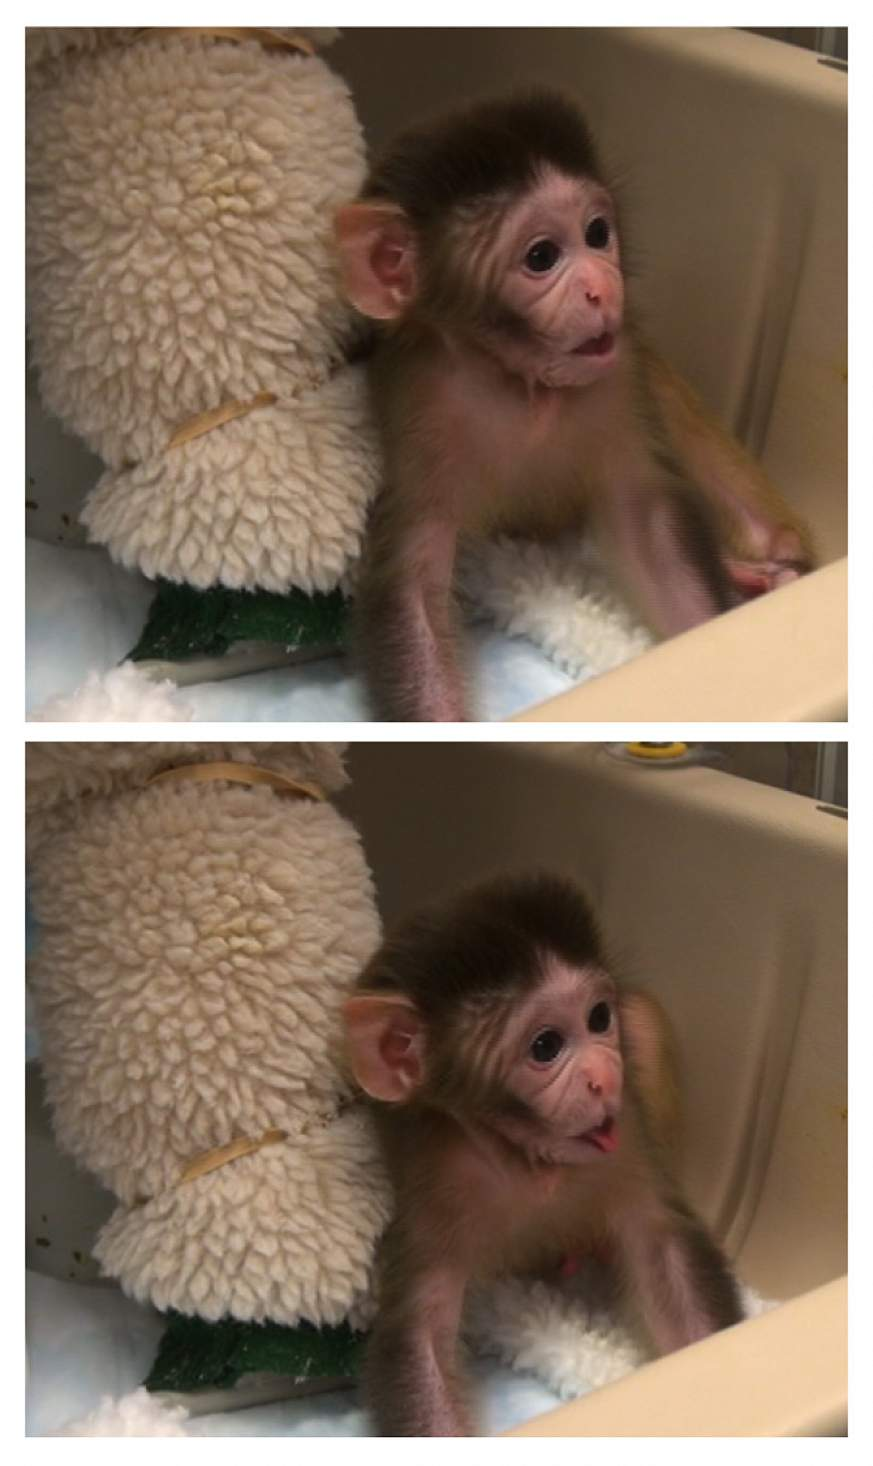 Rhesus monkey sticking out its tongue.